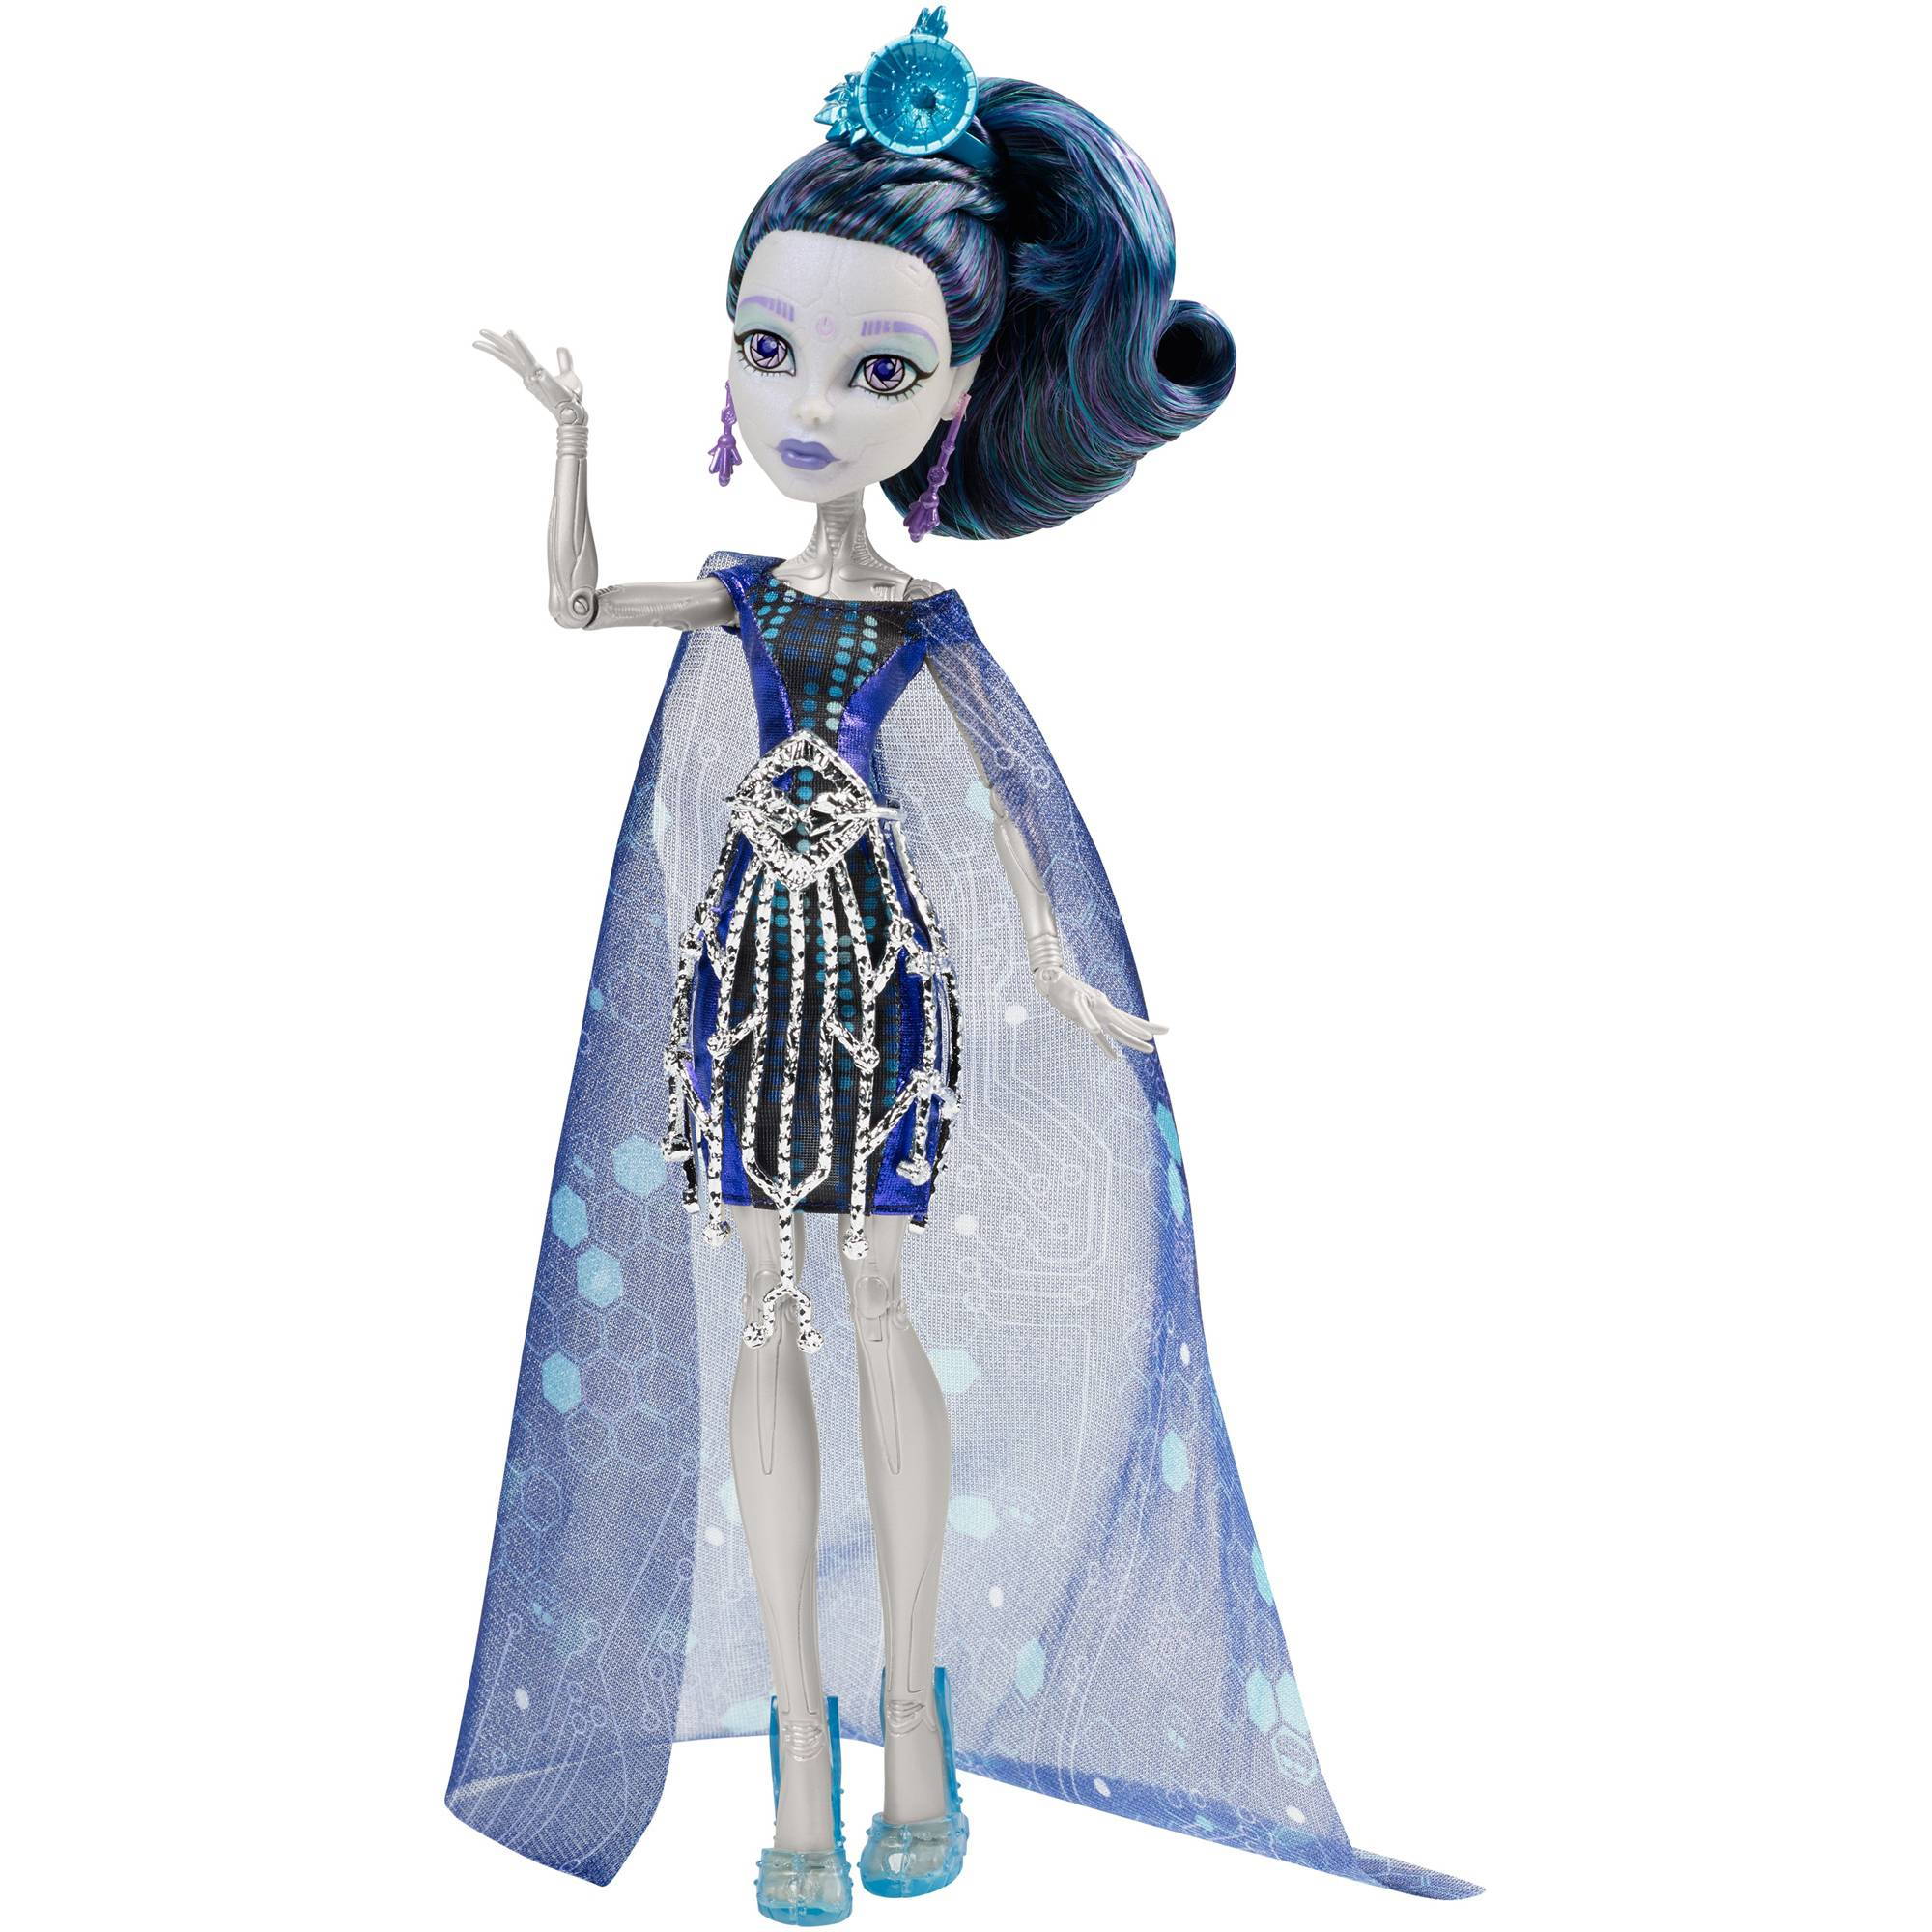 Monster High Boo York Elle Eedee Doll by Monster High